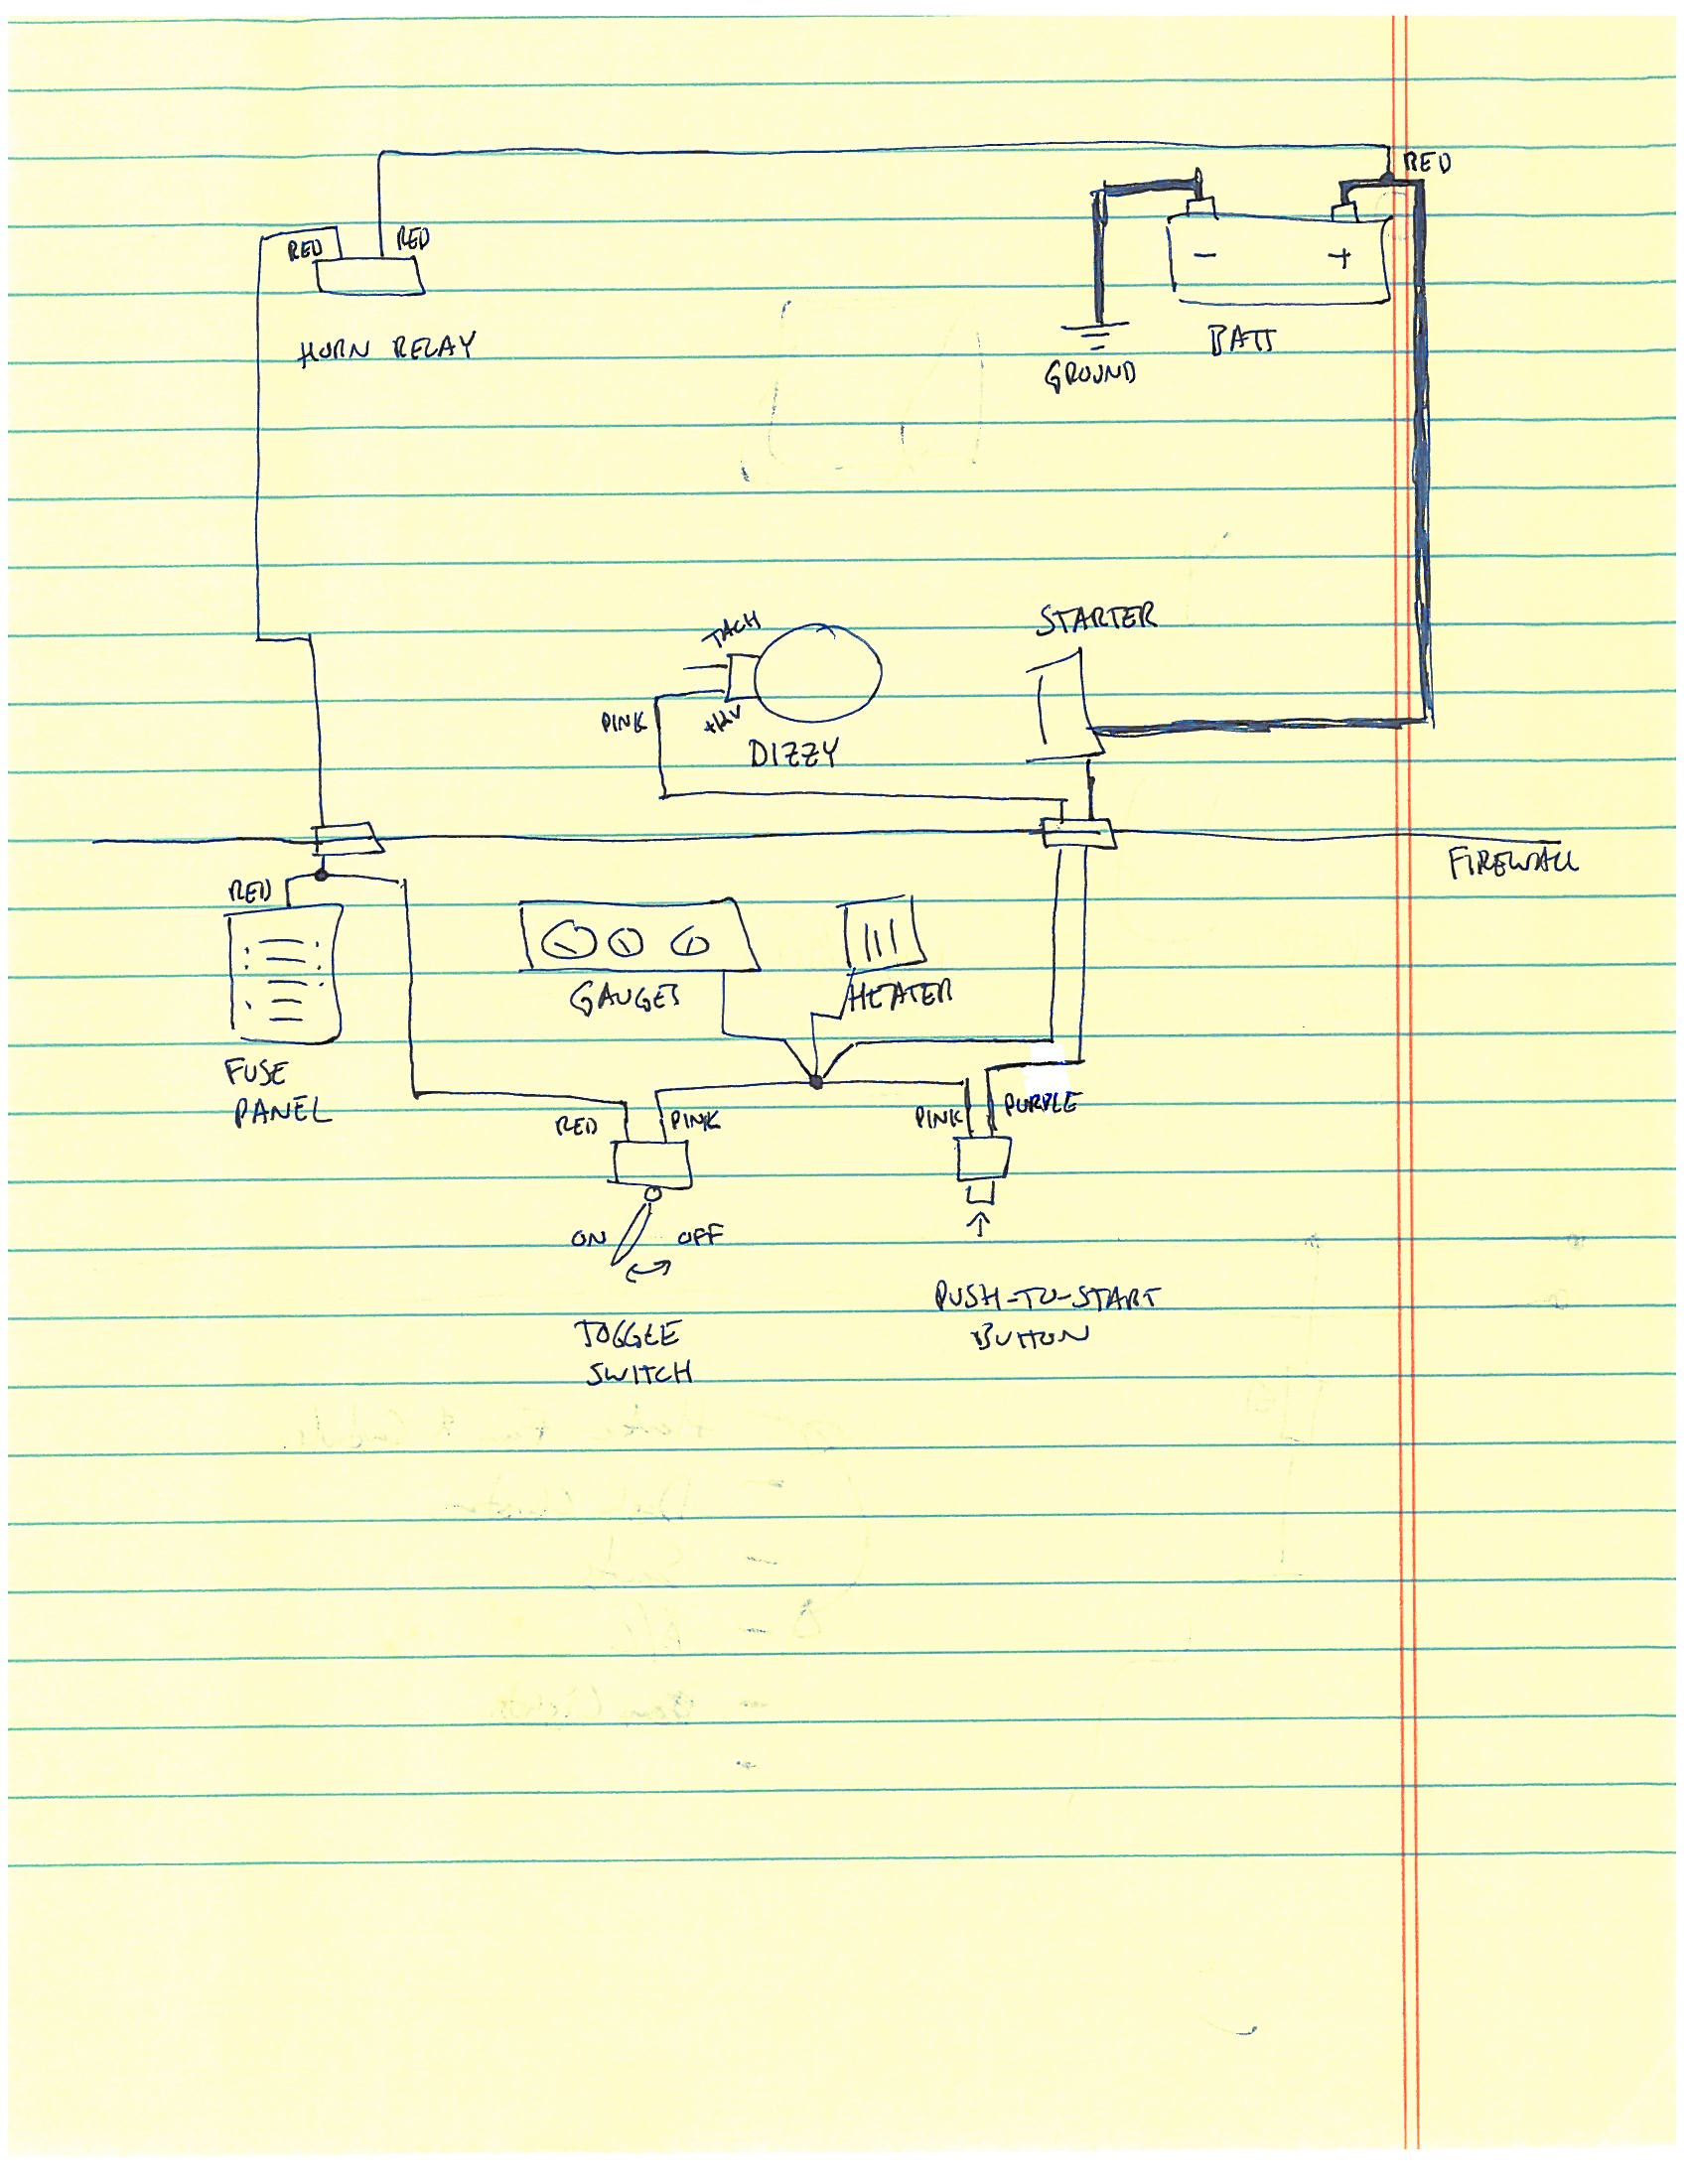 Wiring Example gm truck parts 14519c 1970 chevrolet truck full color wiring 1972 chevy truck ignition switch wiring diagram at aneh.co